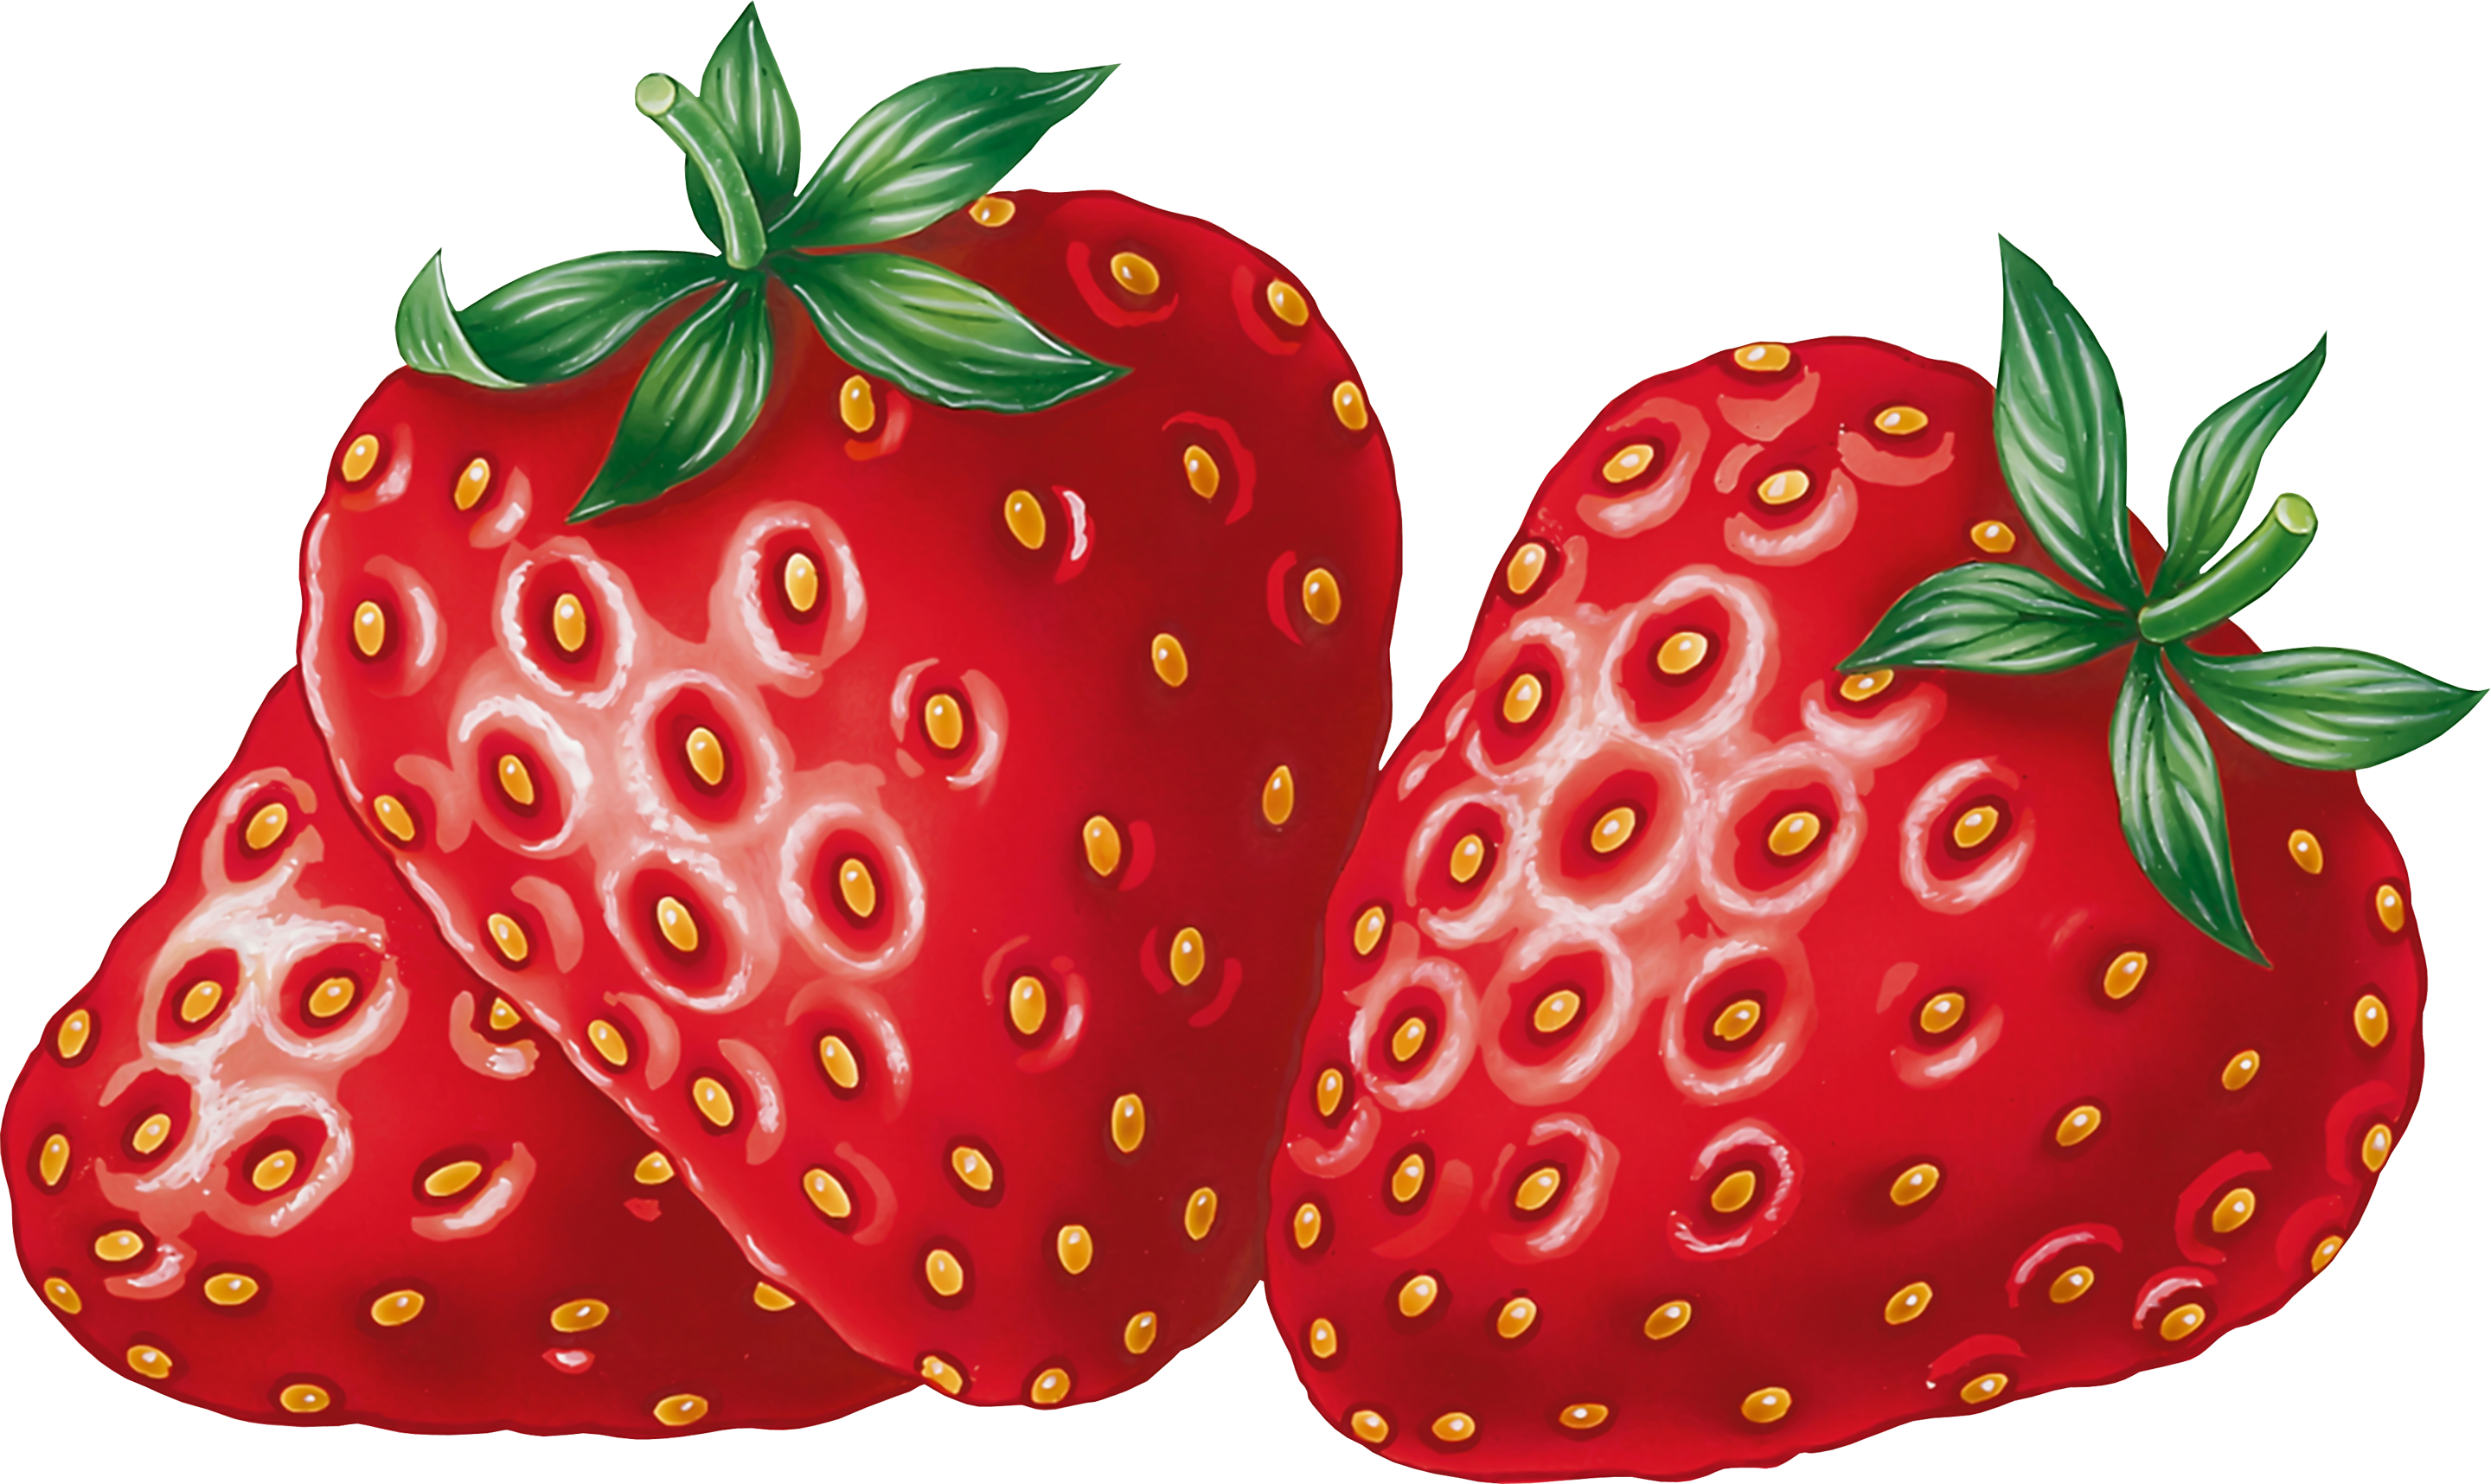 Strawberry images clipart clip art transparent Best Strawberry Clipart #6609 - Clipartion.com clip art transparent